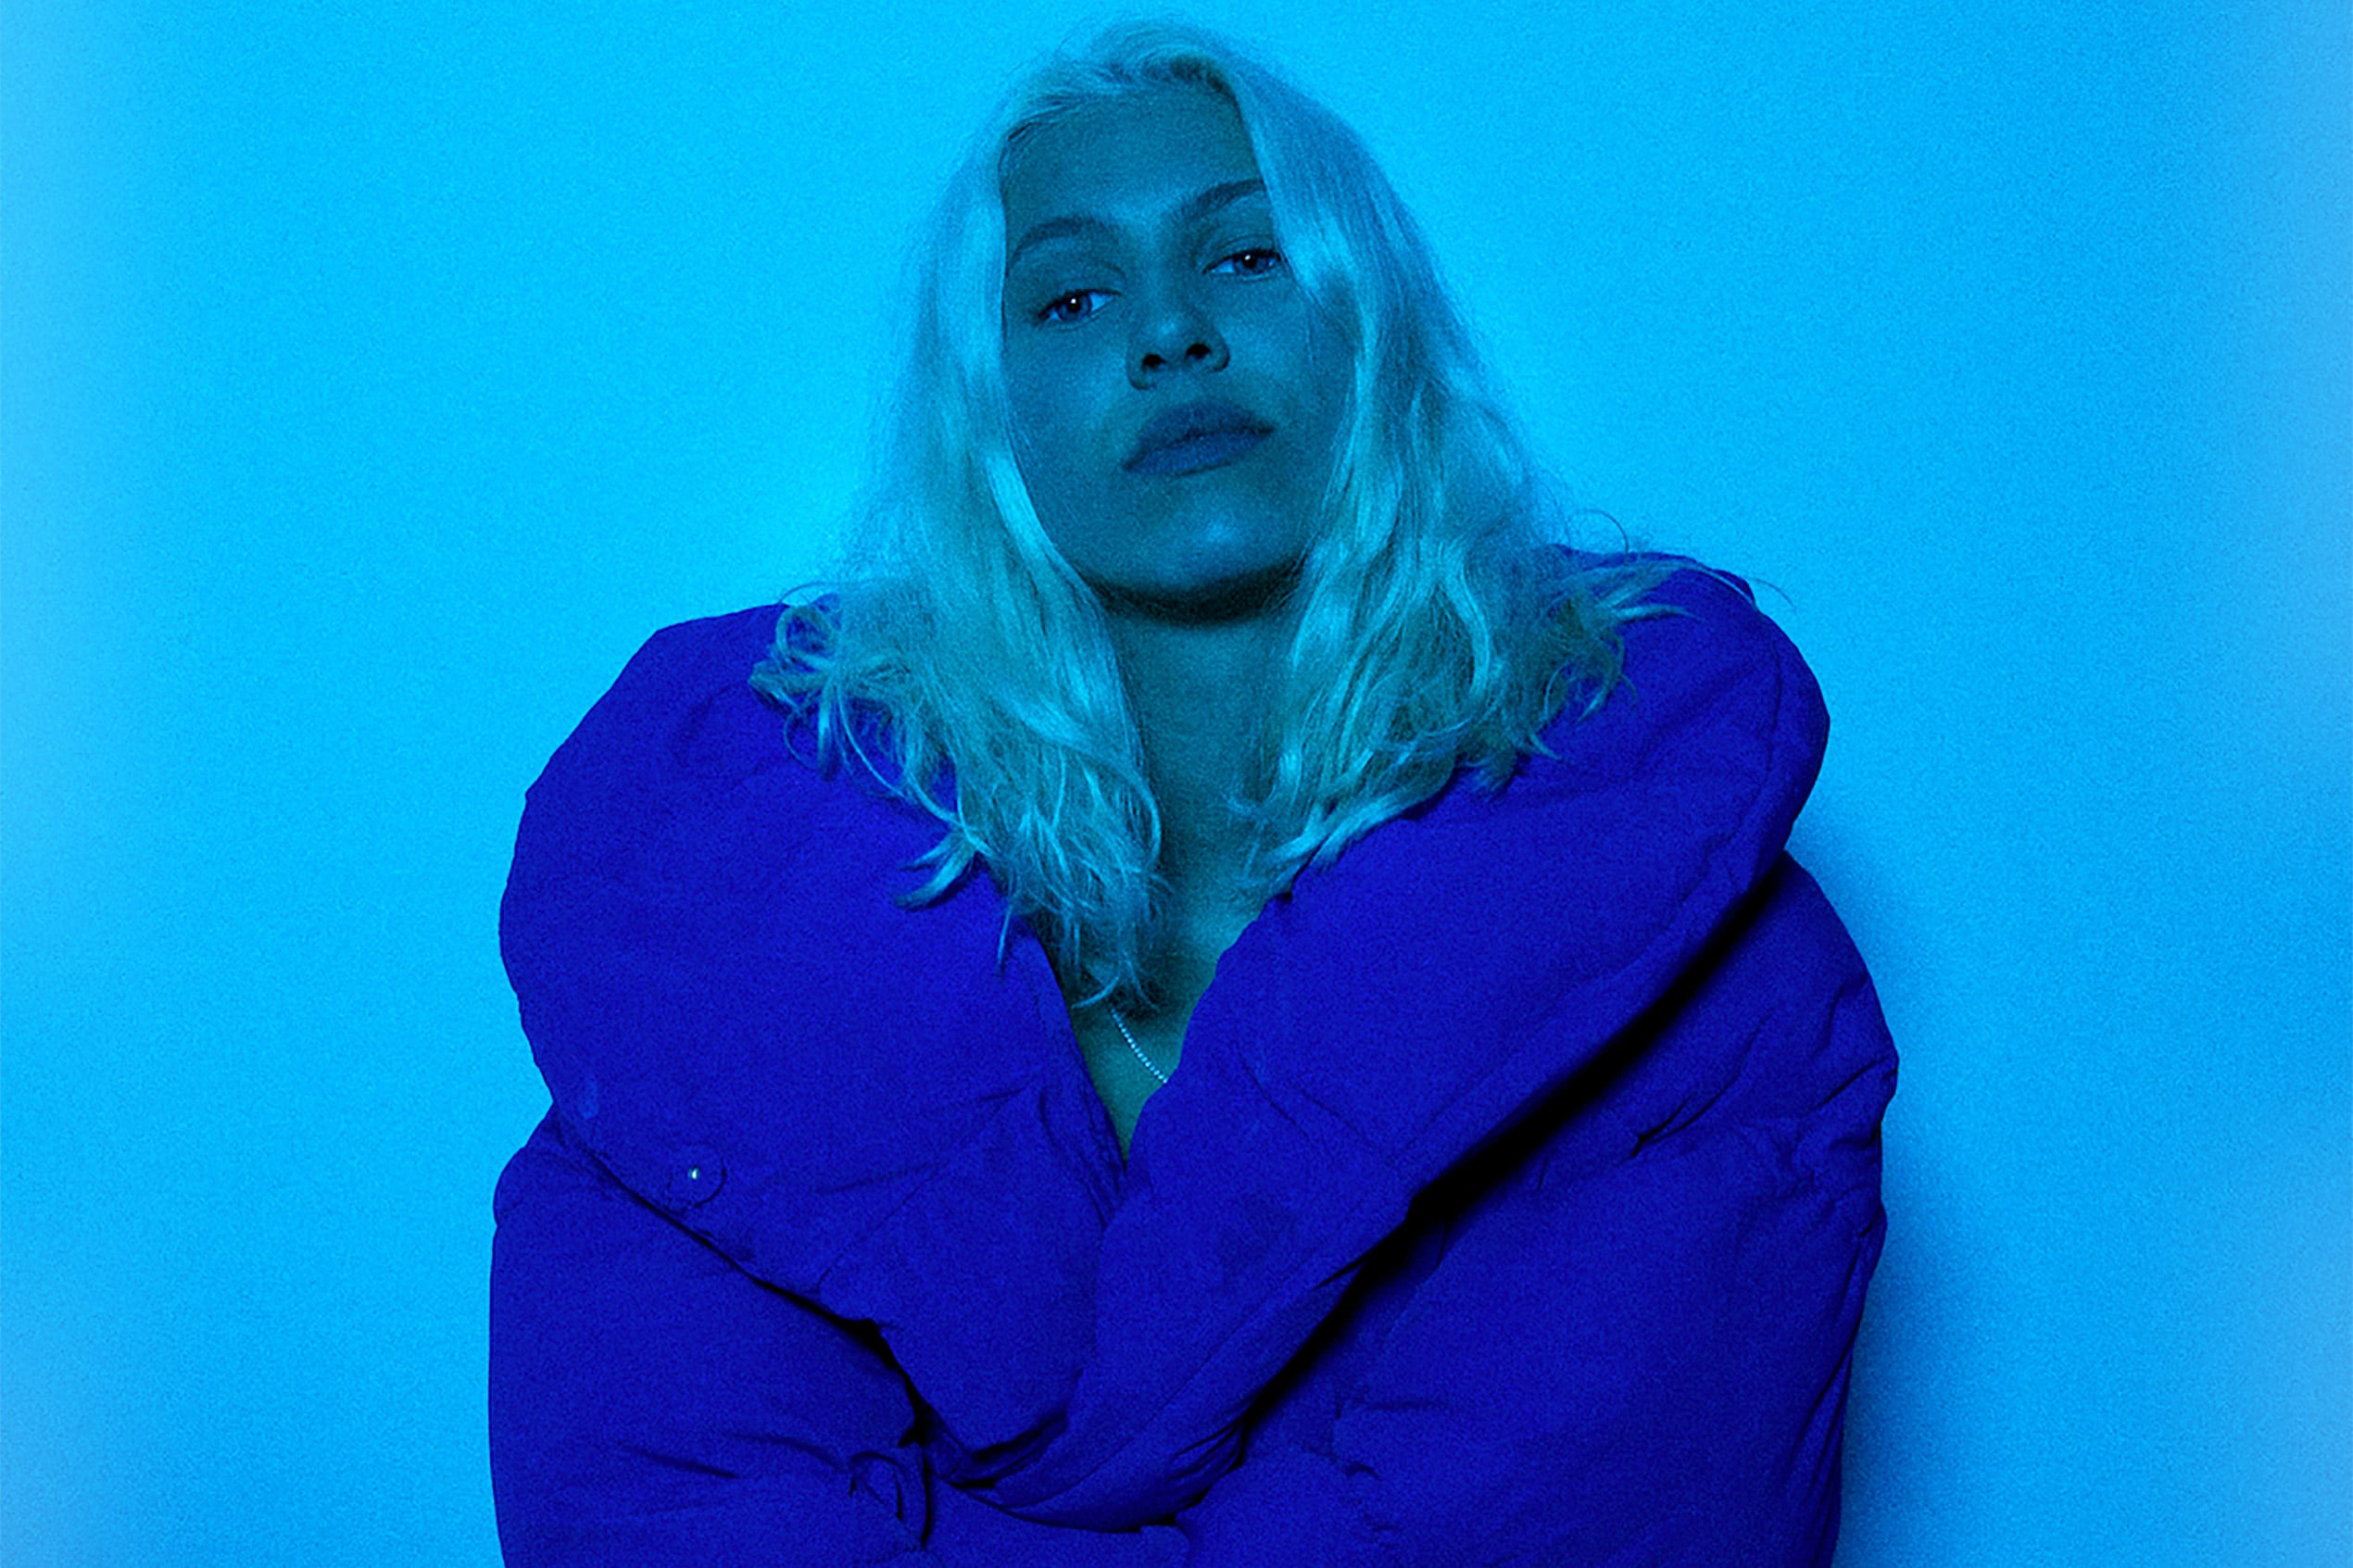 Musician Bríet pictured wearing a bright blue jacket in a blue lit room